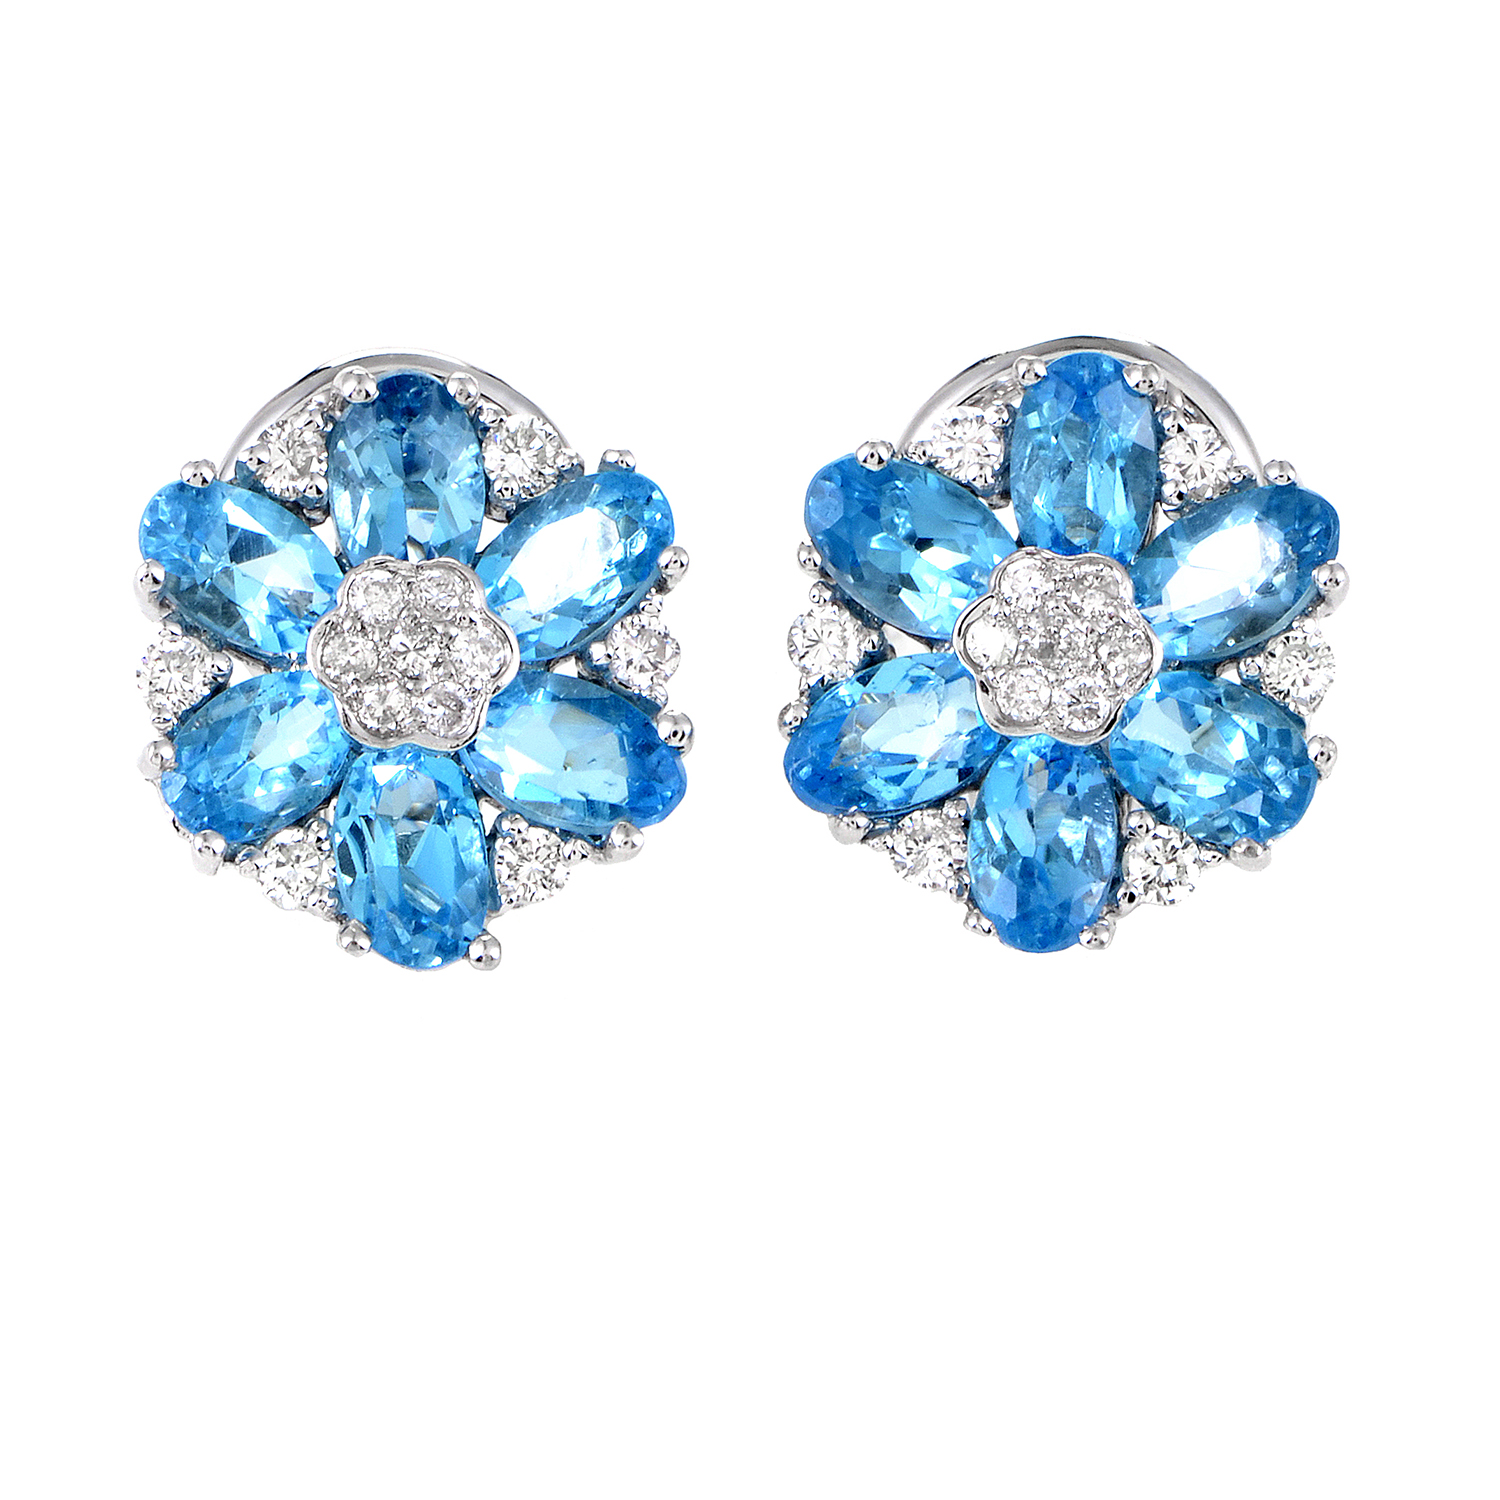 Italian Collection Women's 18K White Gold Diamond & Topaz Flower Earrings